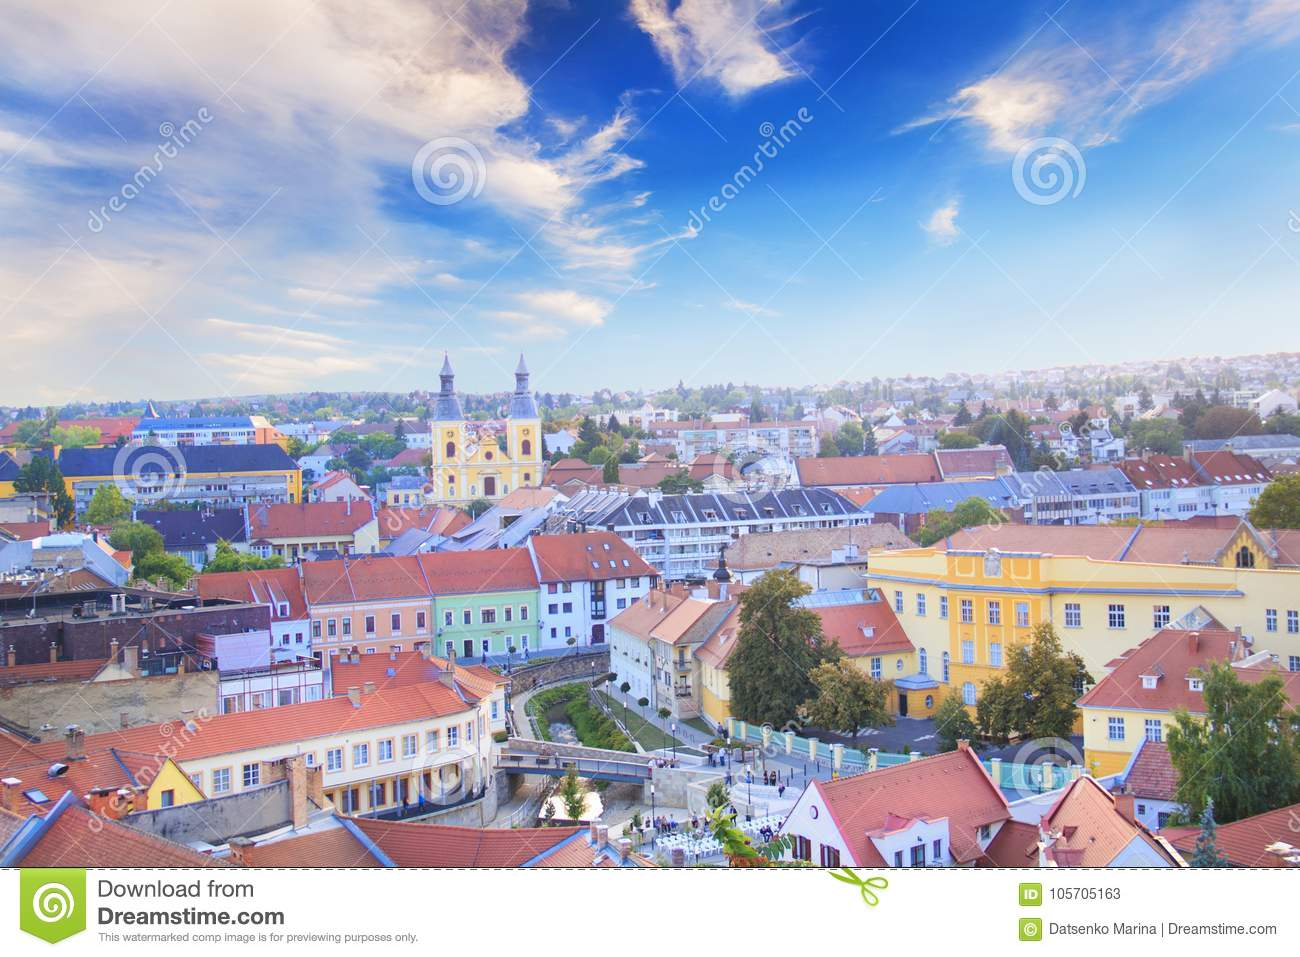 Beautiful view of the Minorit church and the panorama of the city of Eger, Hungary